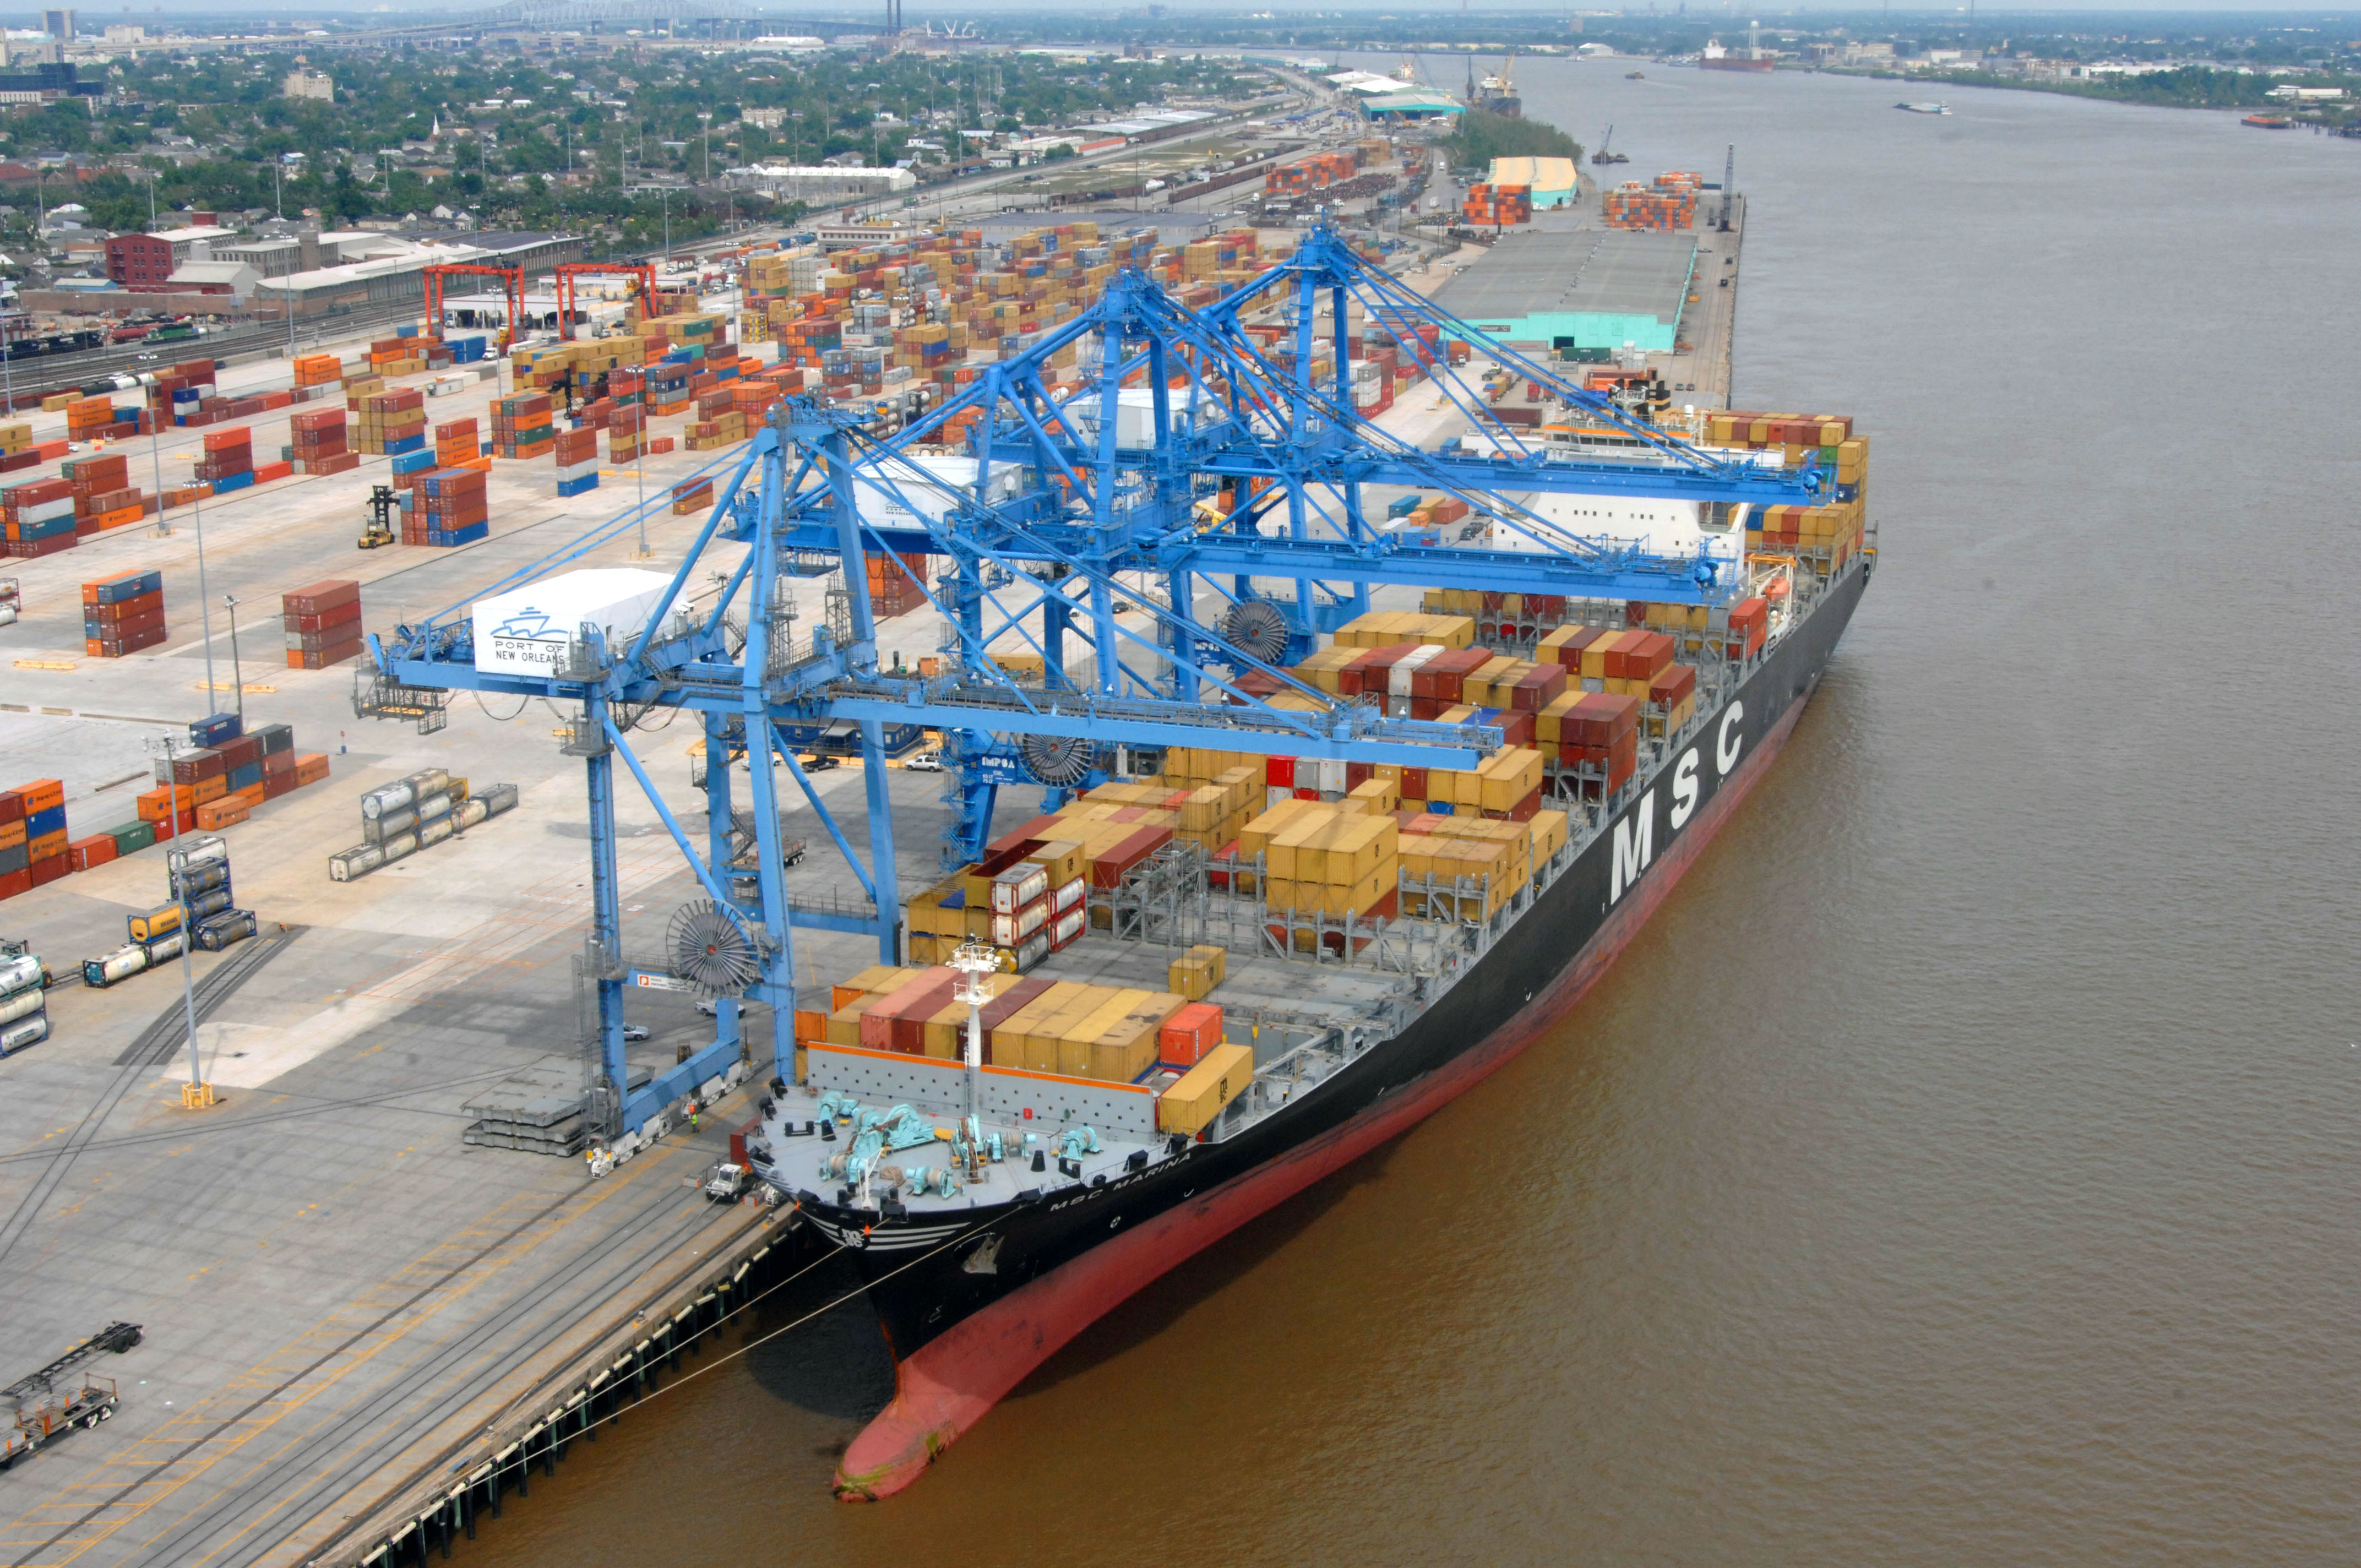 Container_ship_New_Orleans By Gnovick